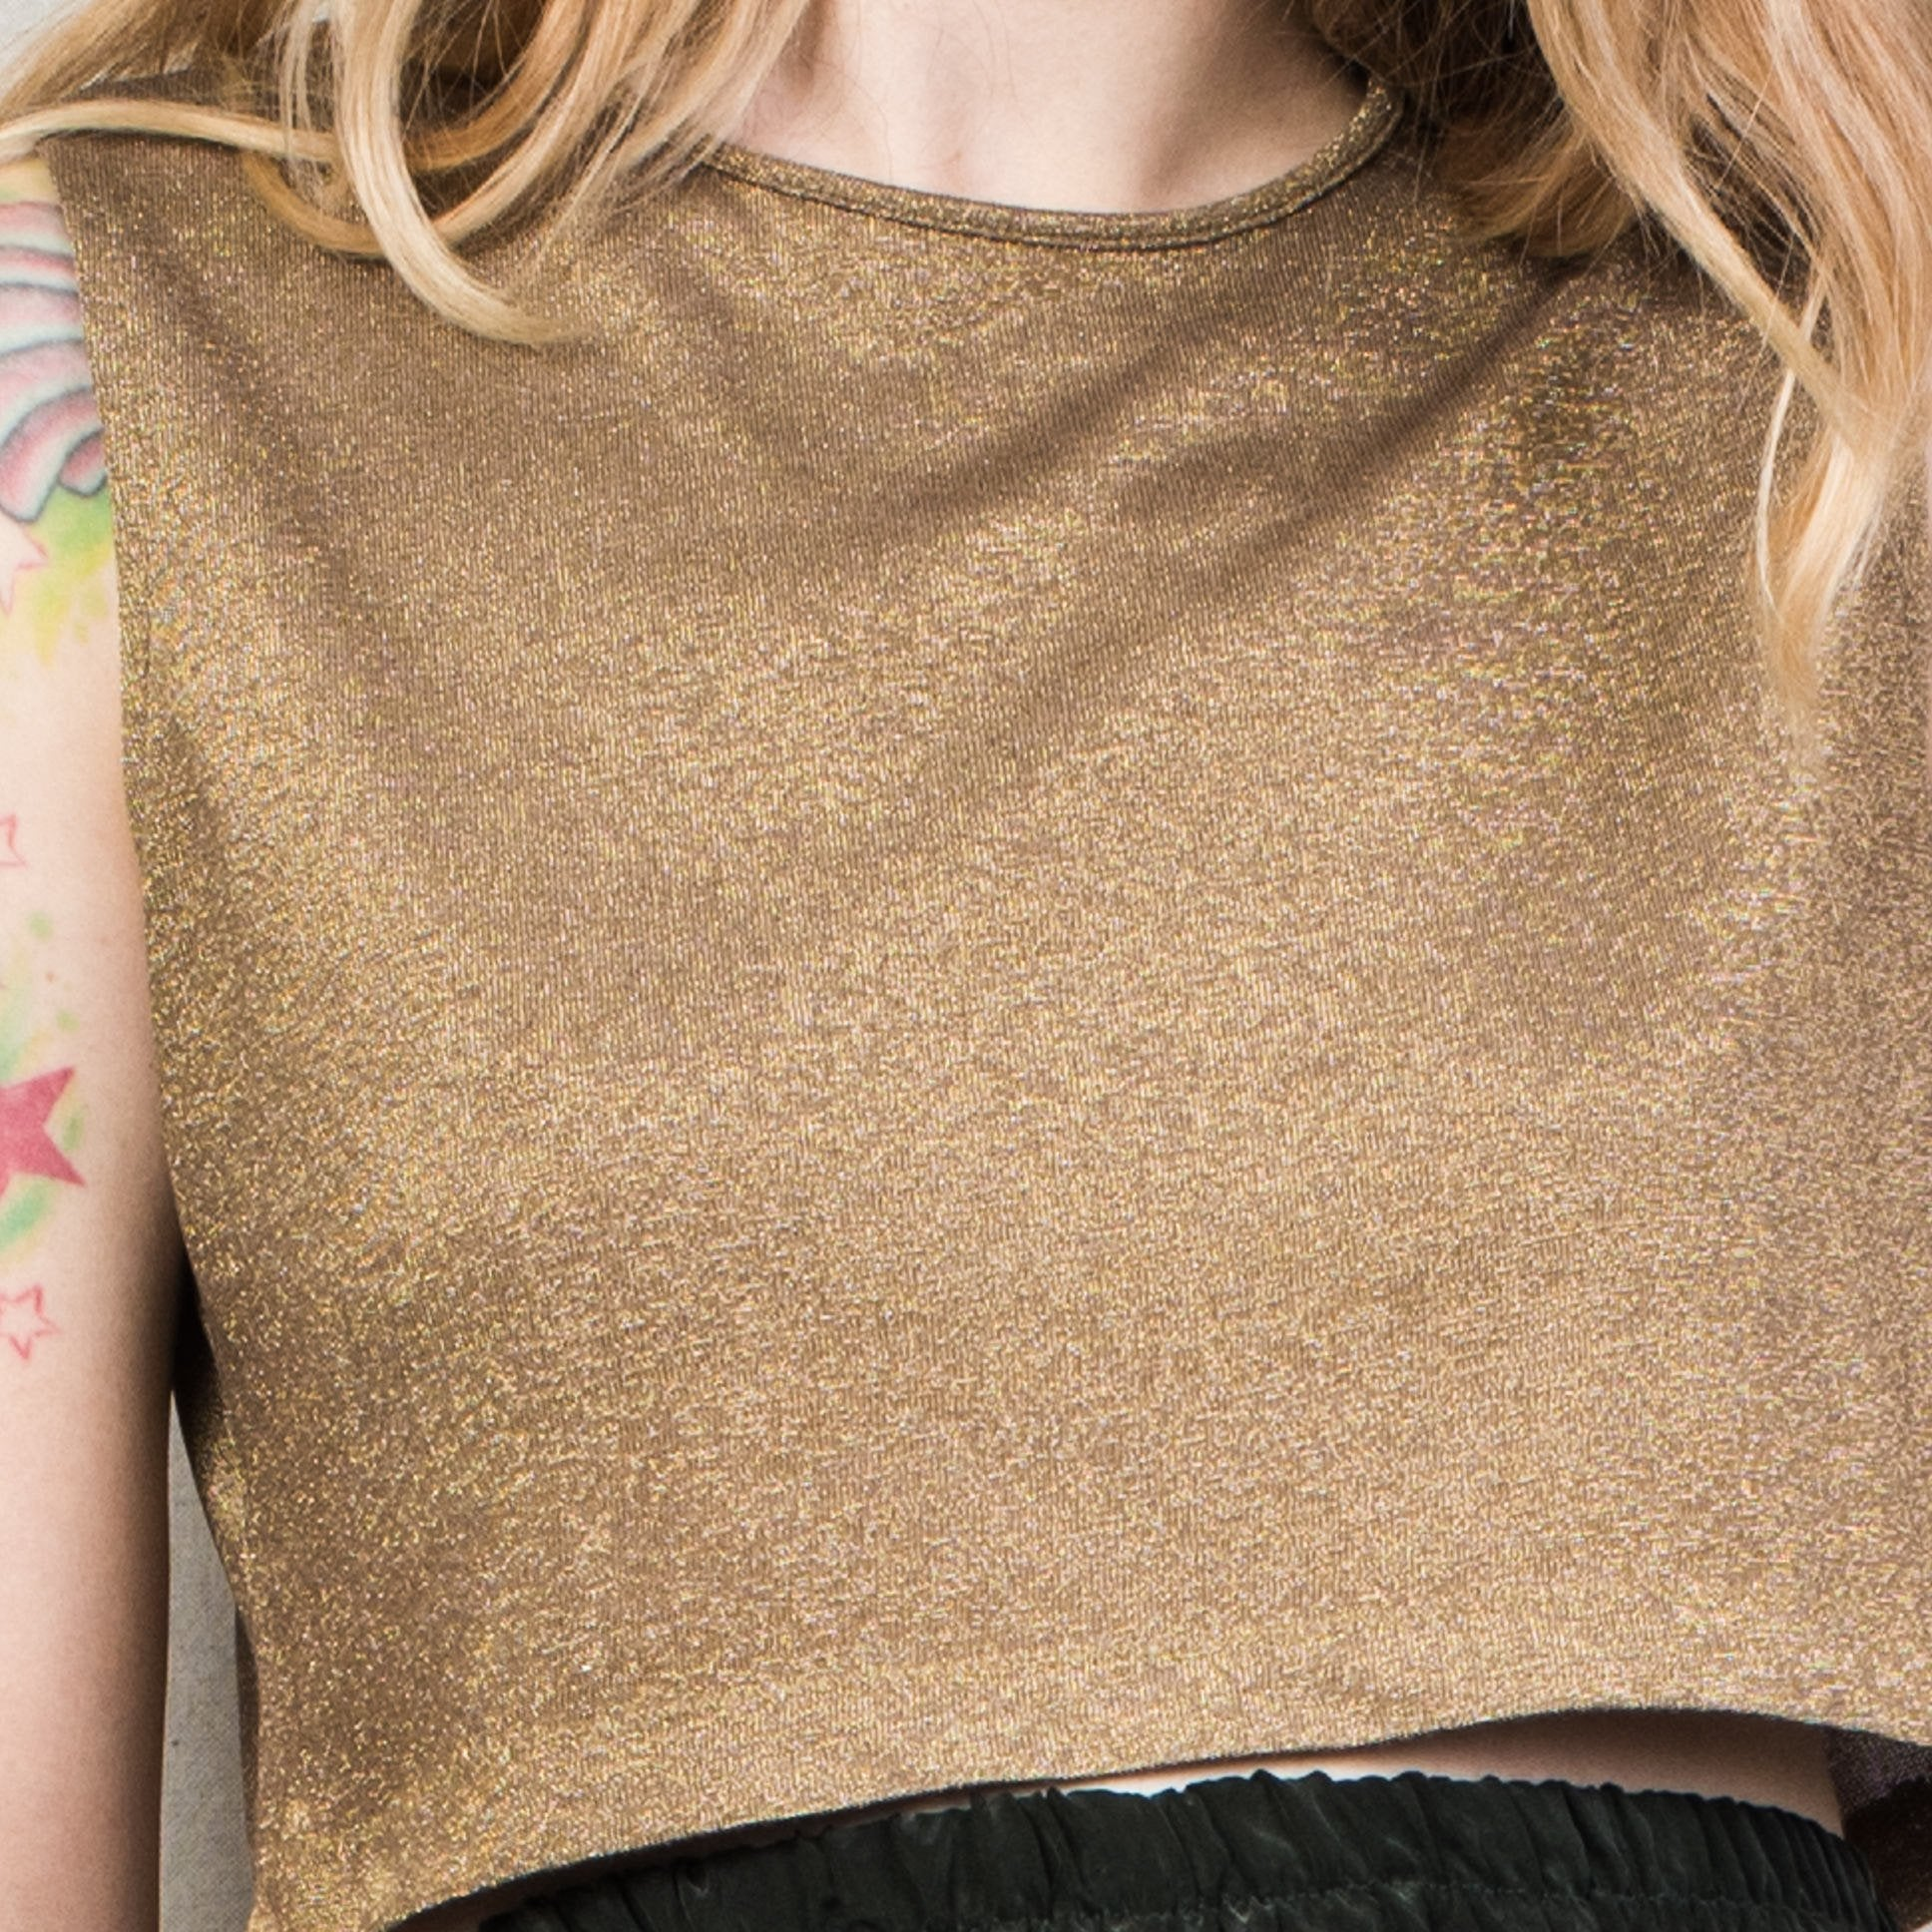 Vintage Cropped Gold Glitter RALPH LAUREN Knit Top / S - Closed Caption